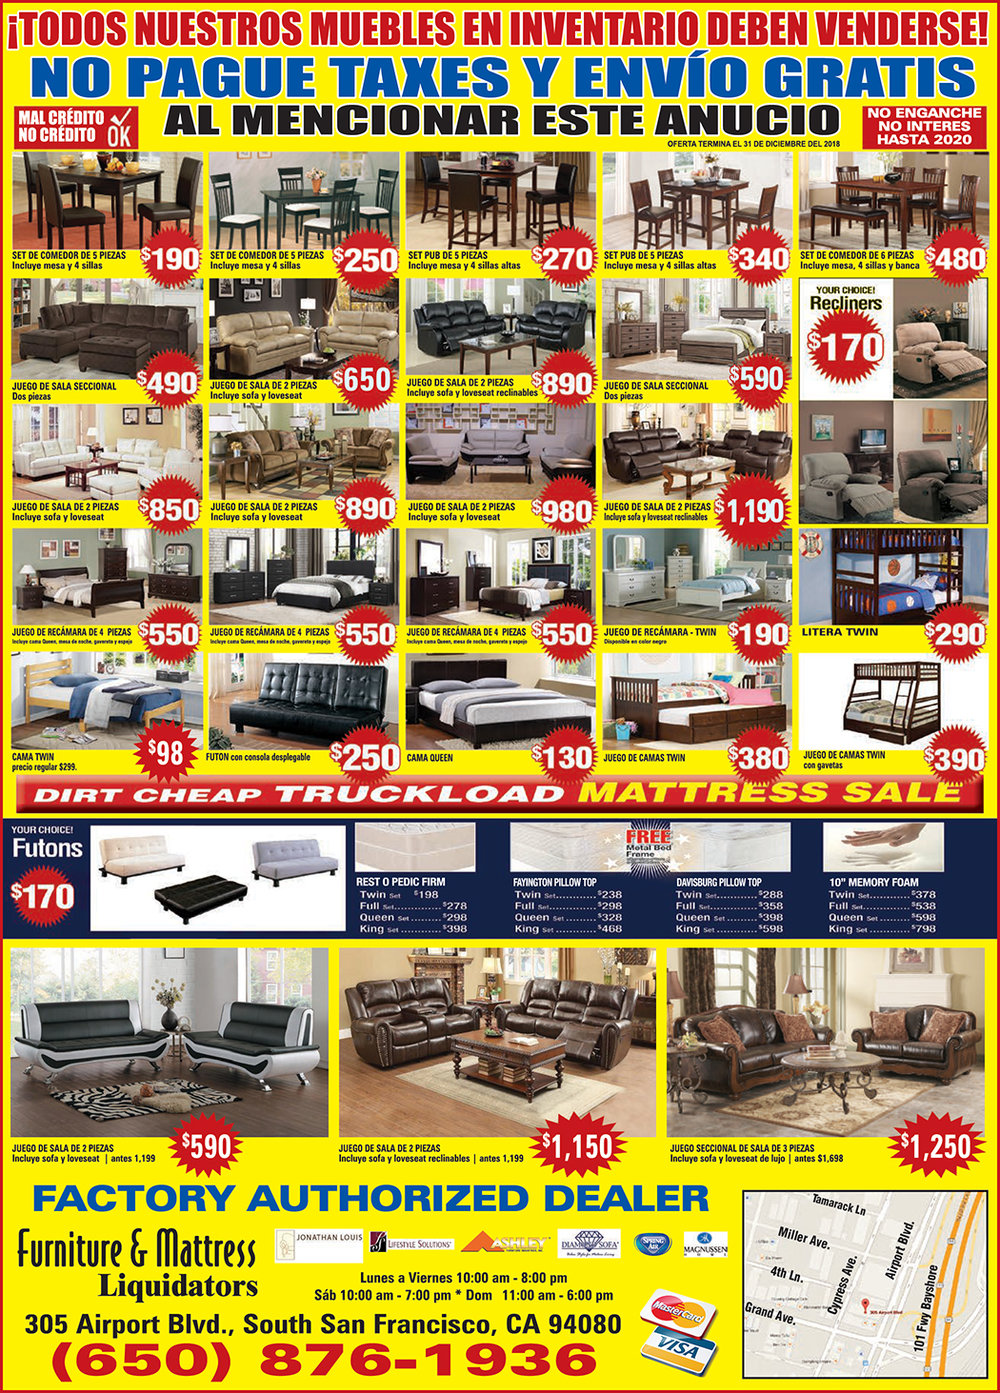 Furniture & Mattress Liquidators 1 Pag  -  DICIEMBRE 2018.jpg